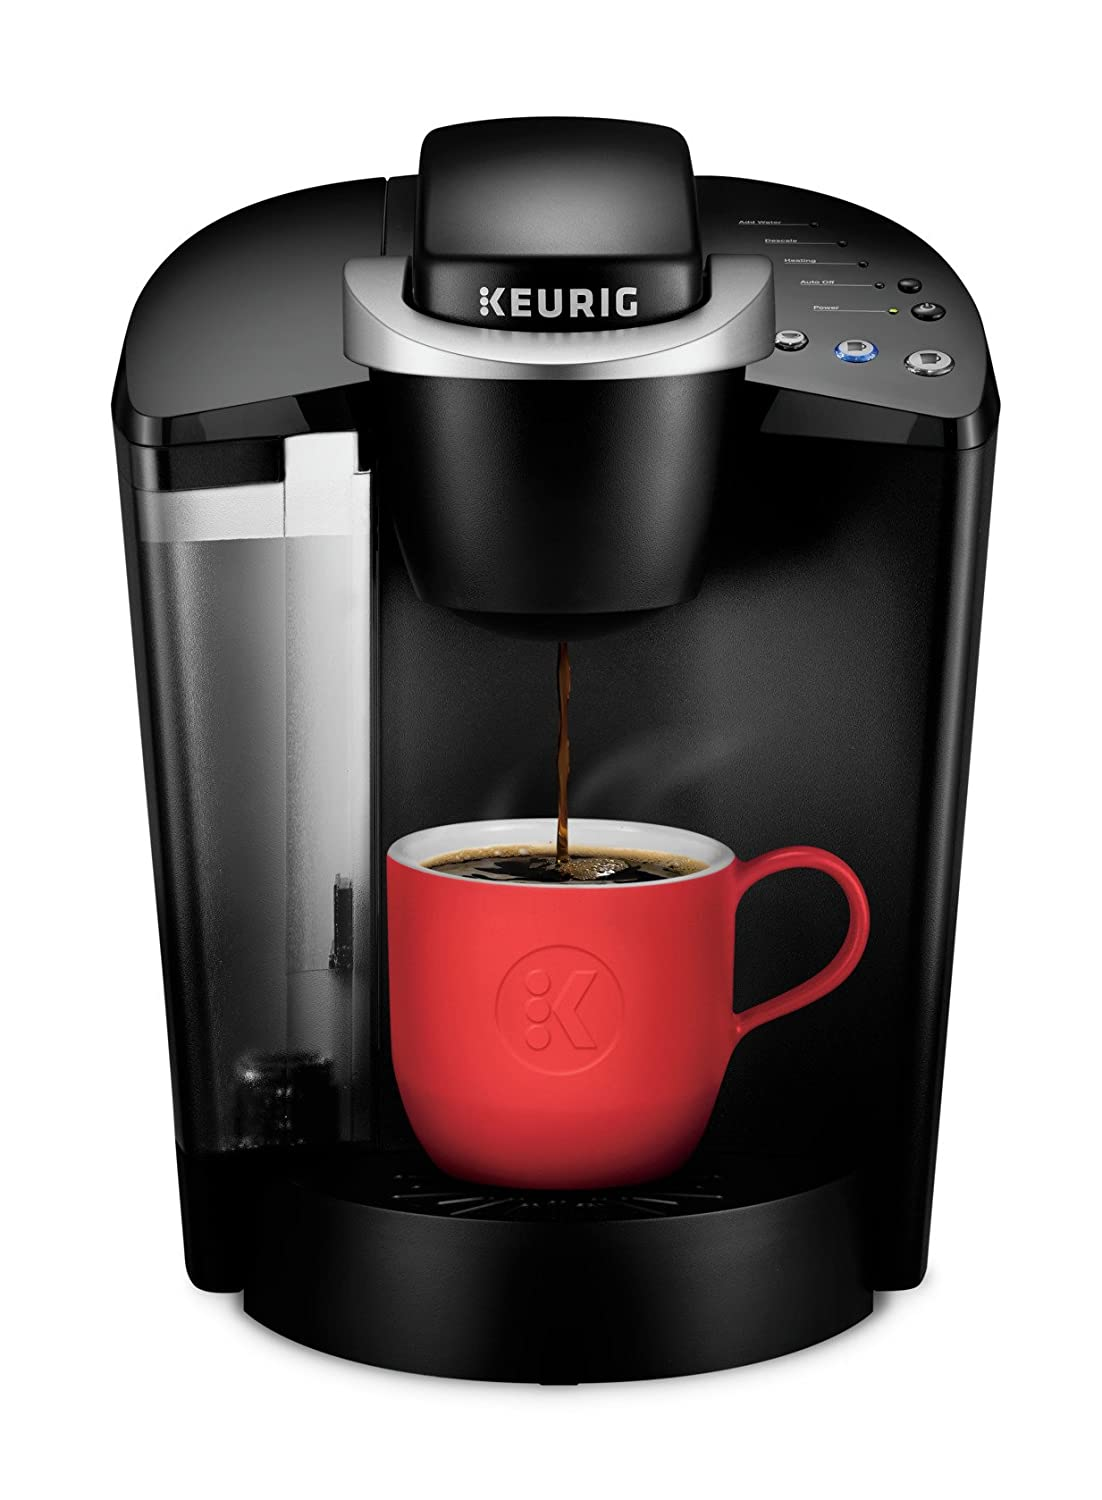 Best Single Cup Coffee Maker Reviews 2019: Top 5+ Recommended 4 #cookymom